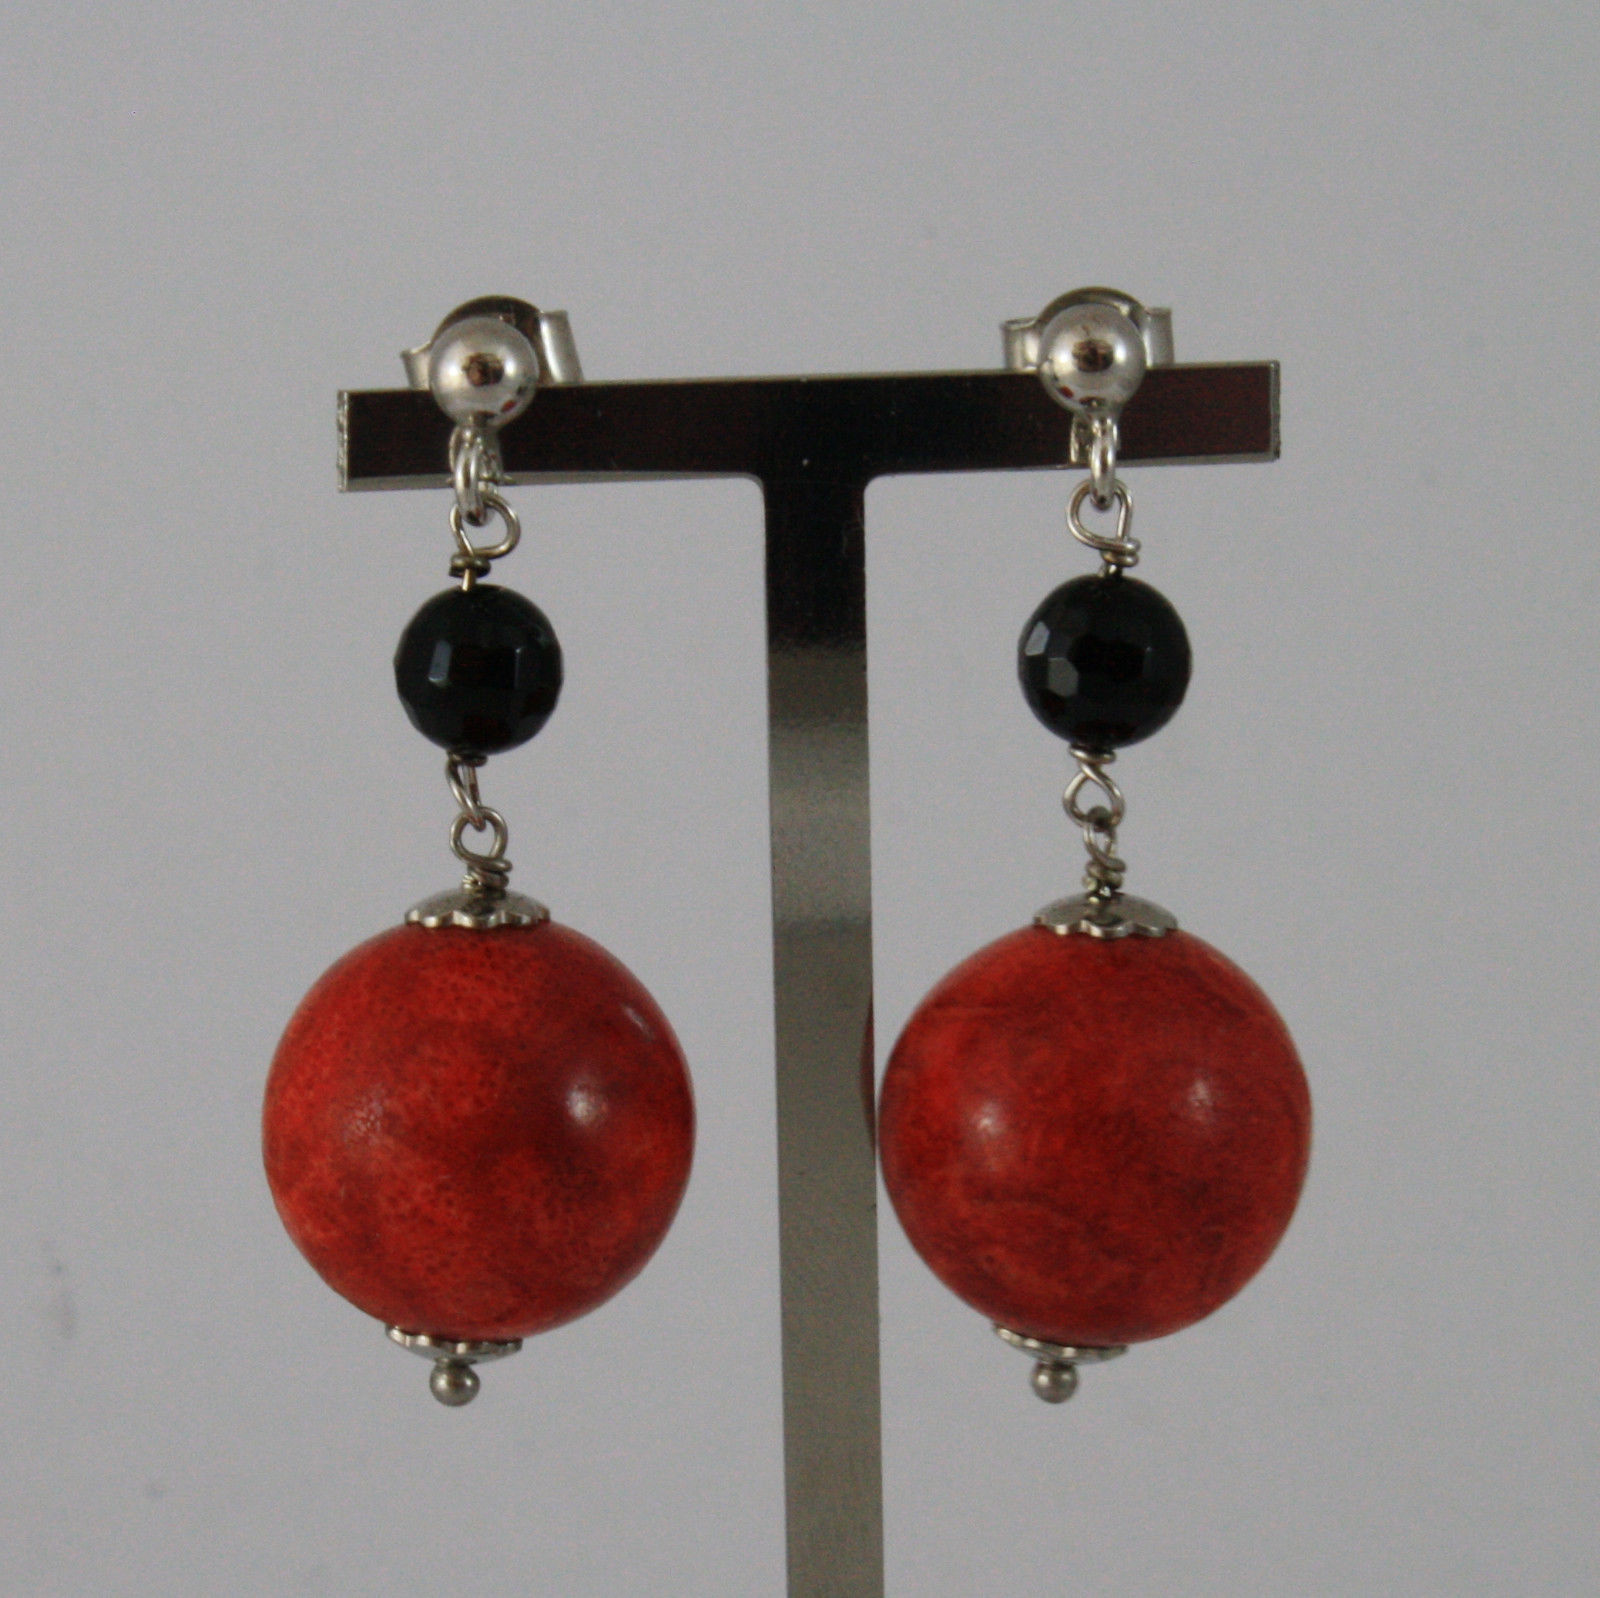 .925 SILVER RHODIUM EARRINGS WITH RED MADREPORA AND BLACK ONYX LENGTH 1,6 IN